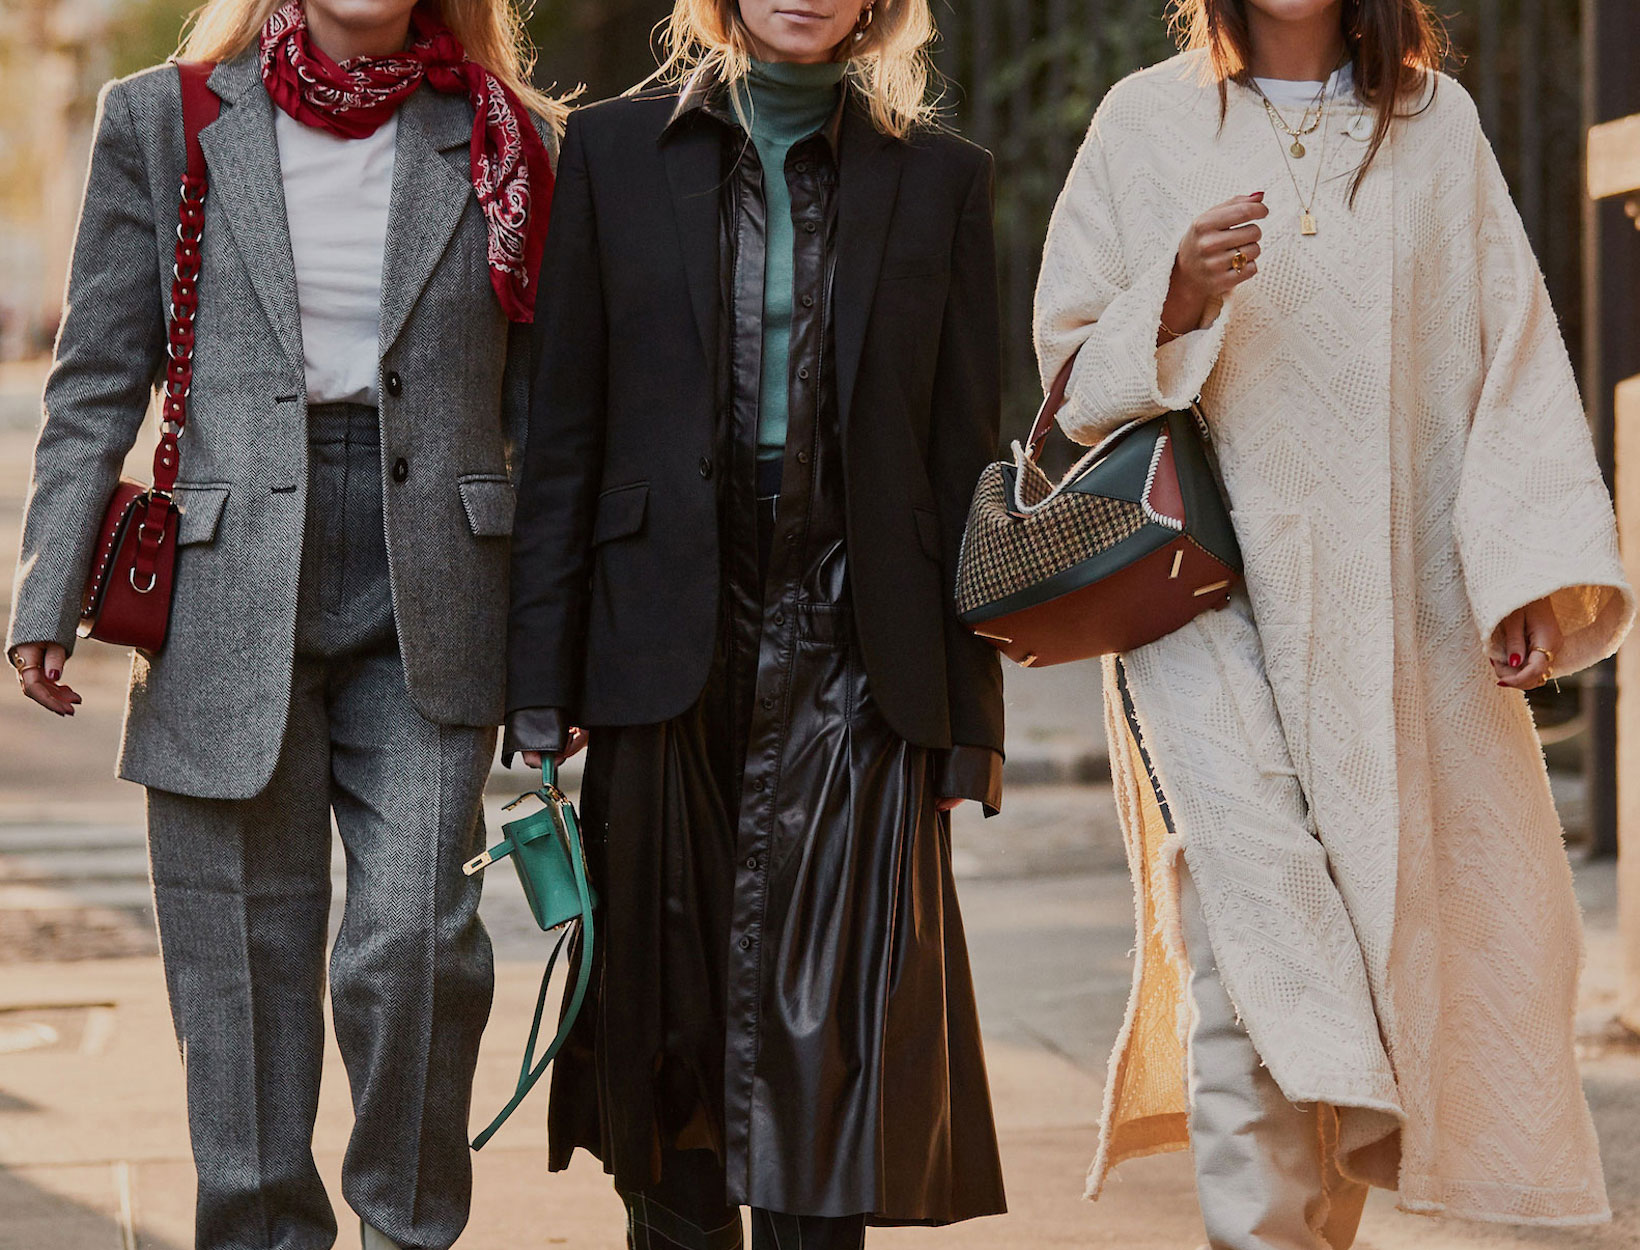 Three Women Walking in Fall Outfits